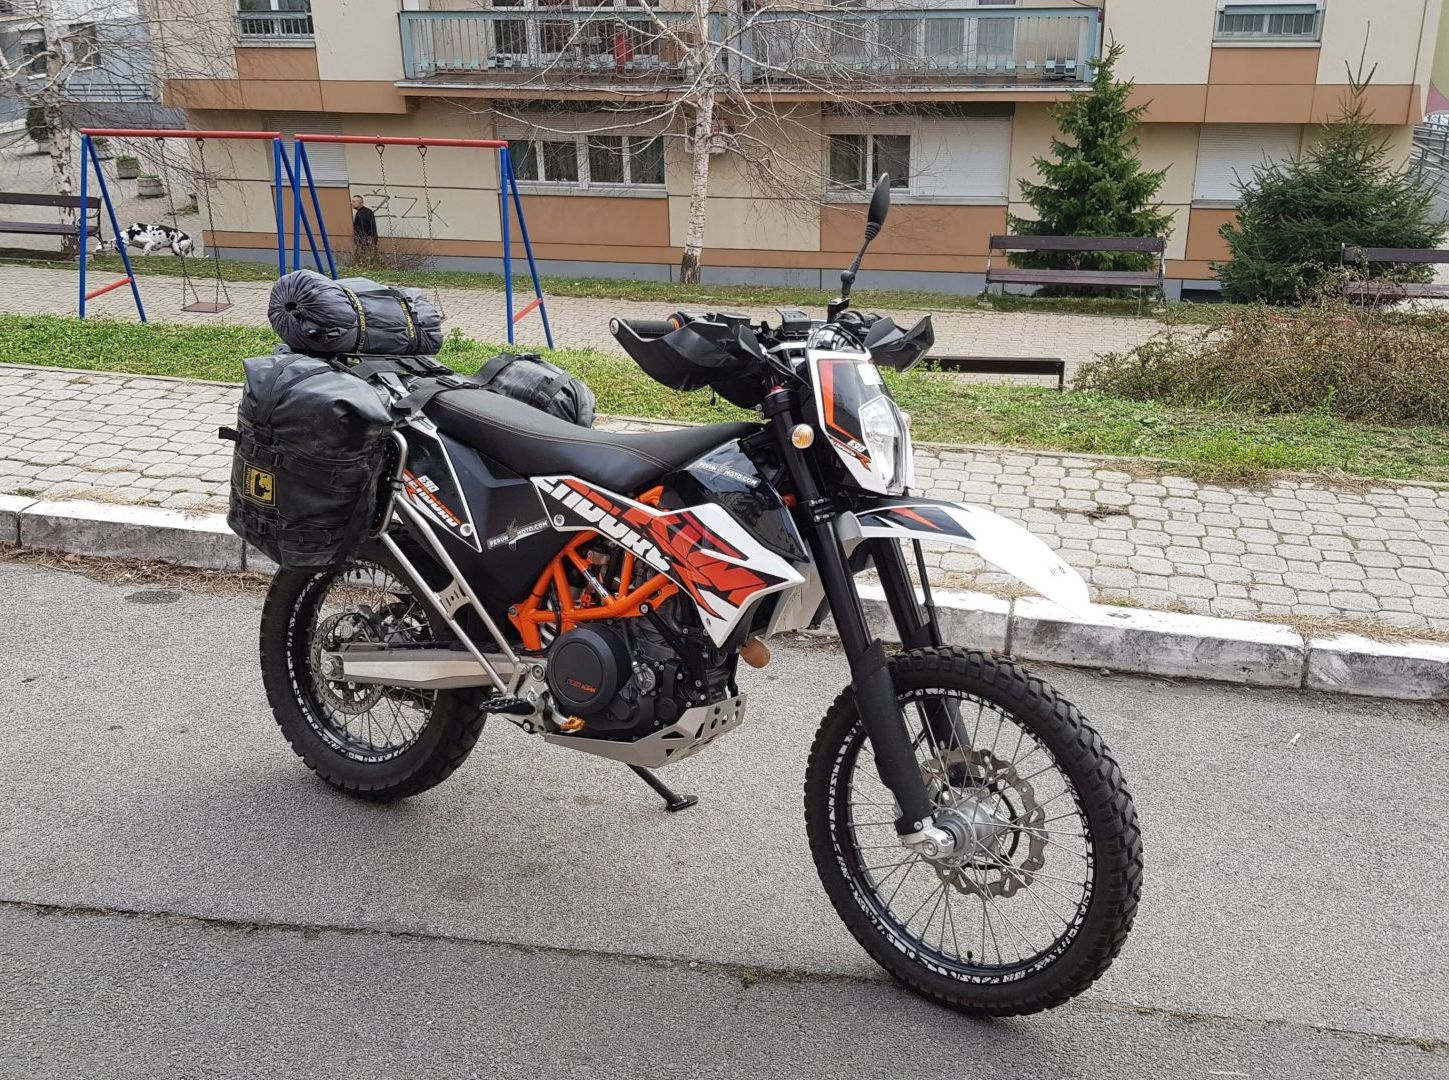 KTM 690 Enduro set up for camping trip - Part I - Wolfman